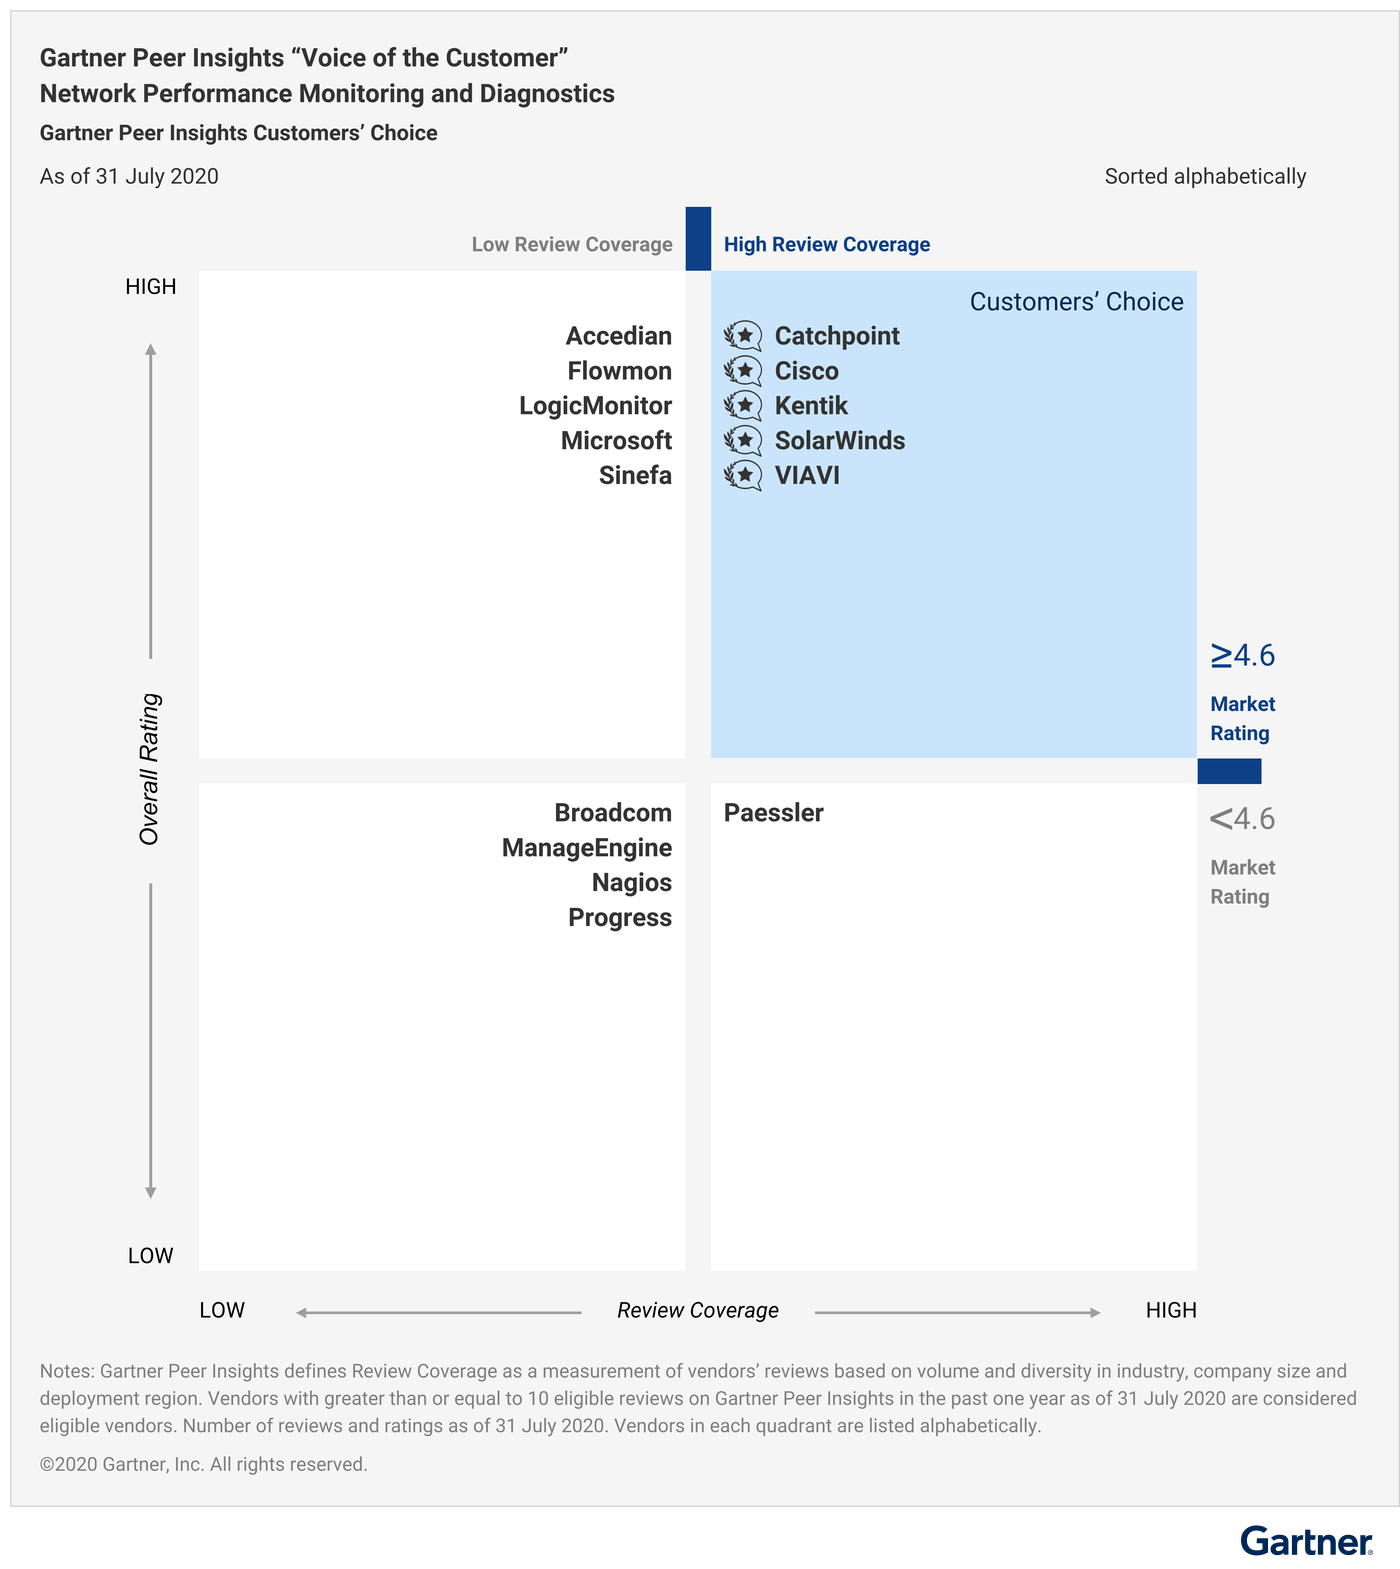 """All eligible vendors are plotted against the """"Review Coverage"""" and """"Overall Rating"""" based on the volume and diversity of reviews. It also features the Customers' Choice, i.e., vendors with greater than equal to 4.6 Market Rating."""